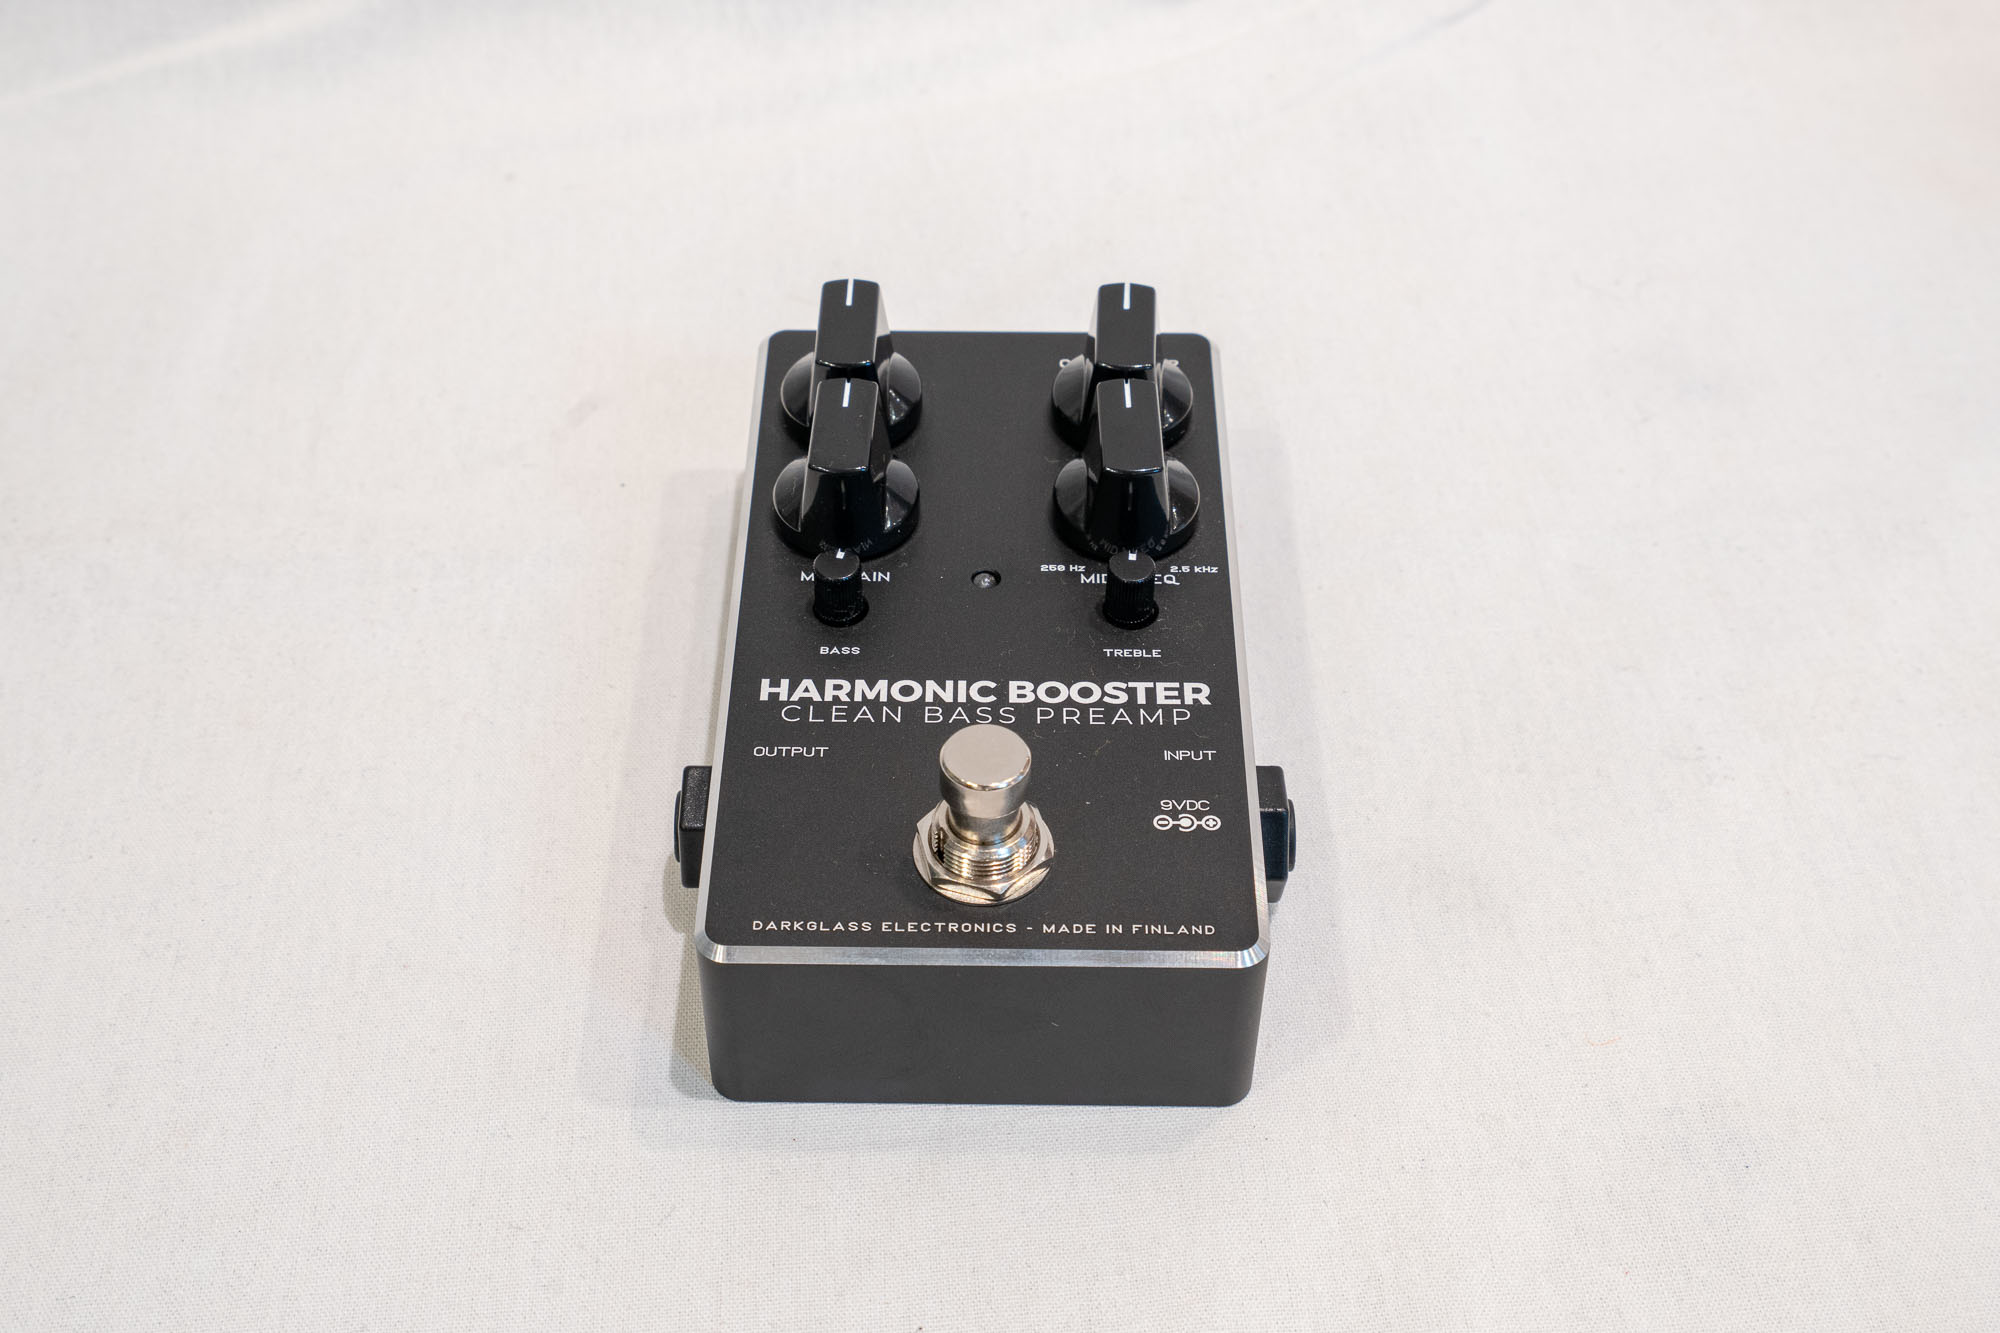 darkglass-electronics-harmonic-booster-20